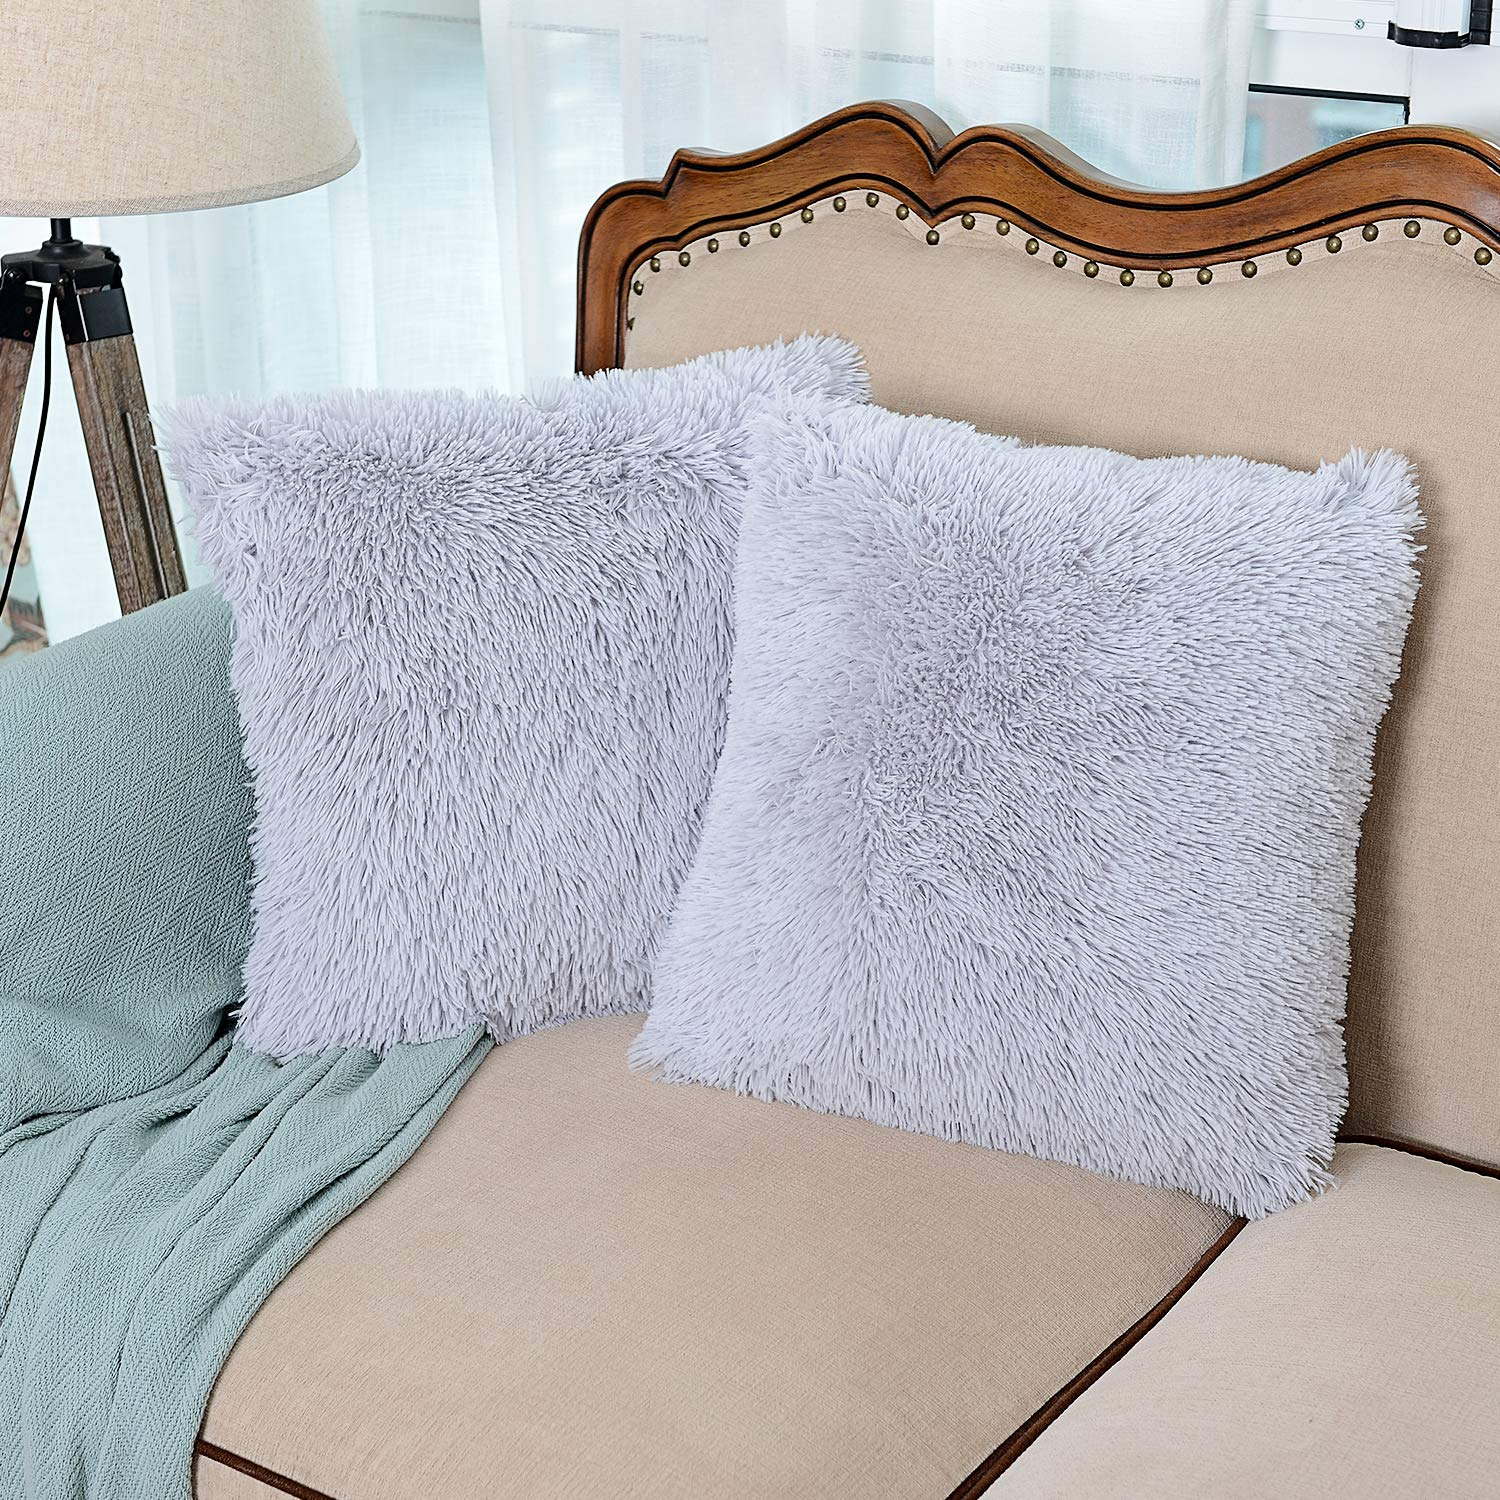 NordECO HOME Luxury Soft Faux Fur Fleece Cushion Cover Pillowcase Decorative Throw Pillows Covers, No Pillow Insert, 18'' x 18'' Inch, Light Grey, 2 Pack